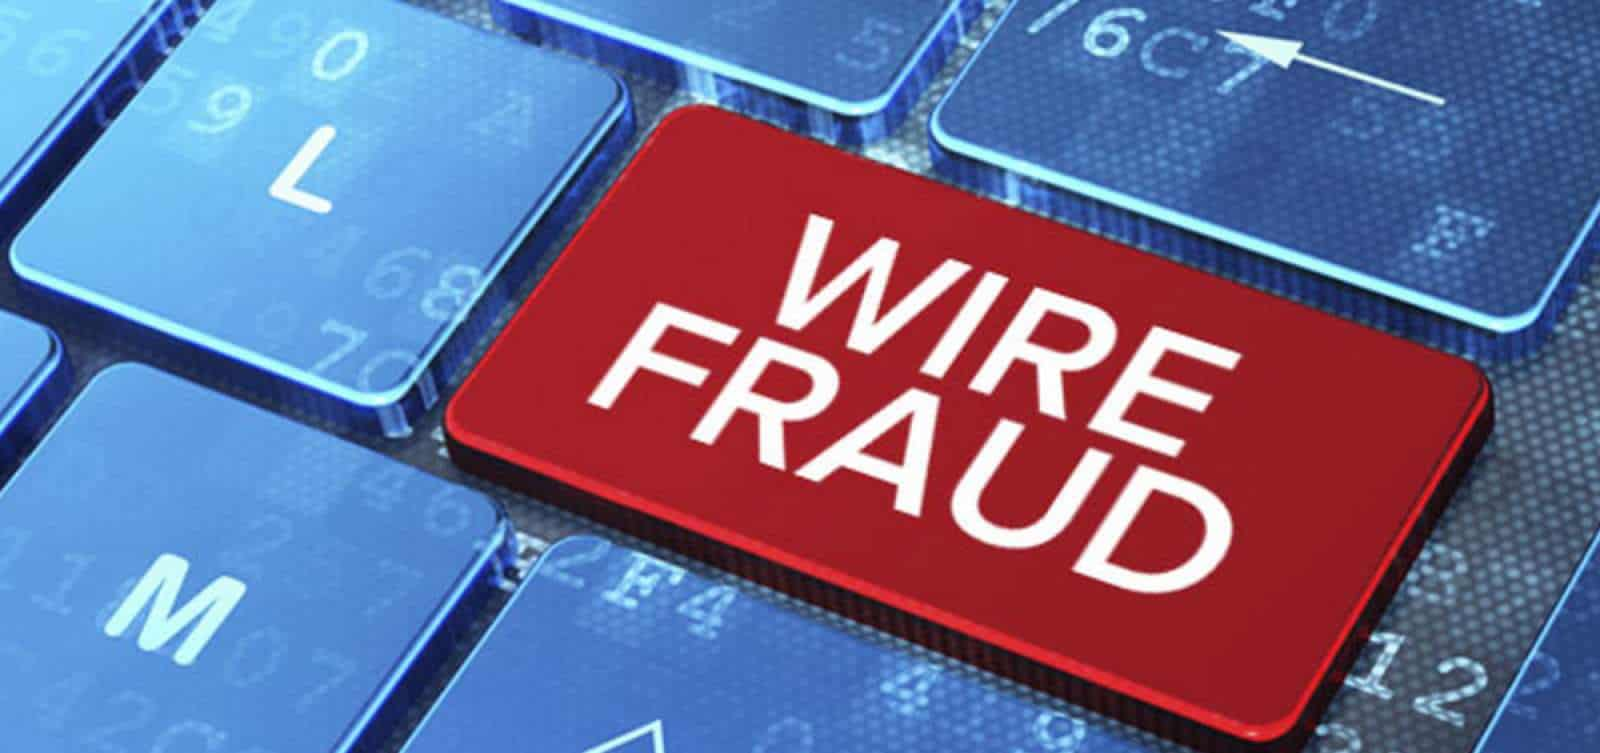 Wire Fraud When You're Wired to Close – Tips for Identifying and Avoiding Wire Fraud in Real Estate Transactions